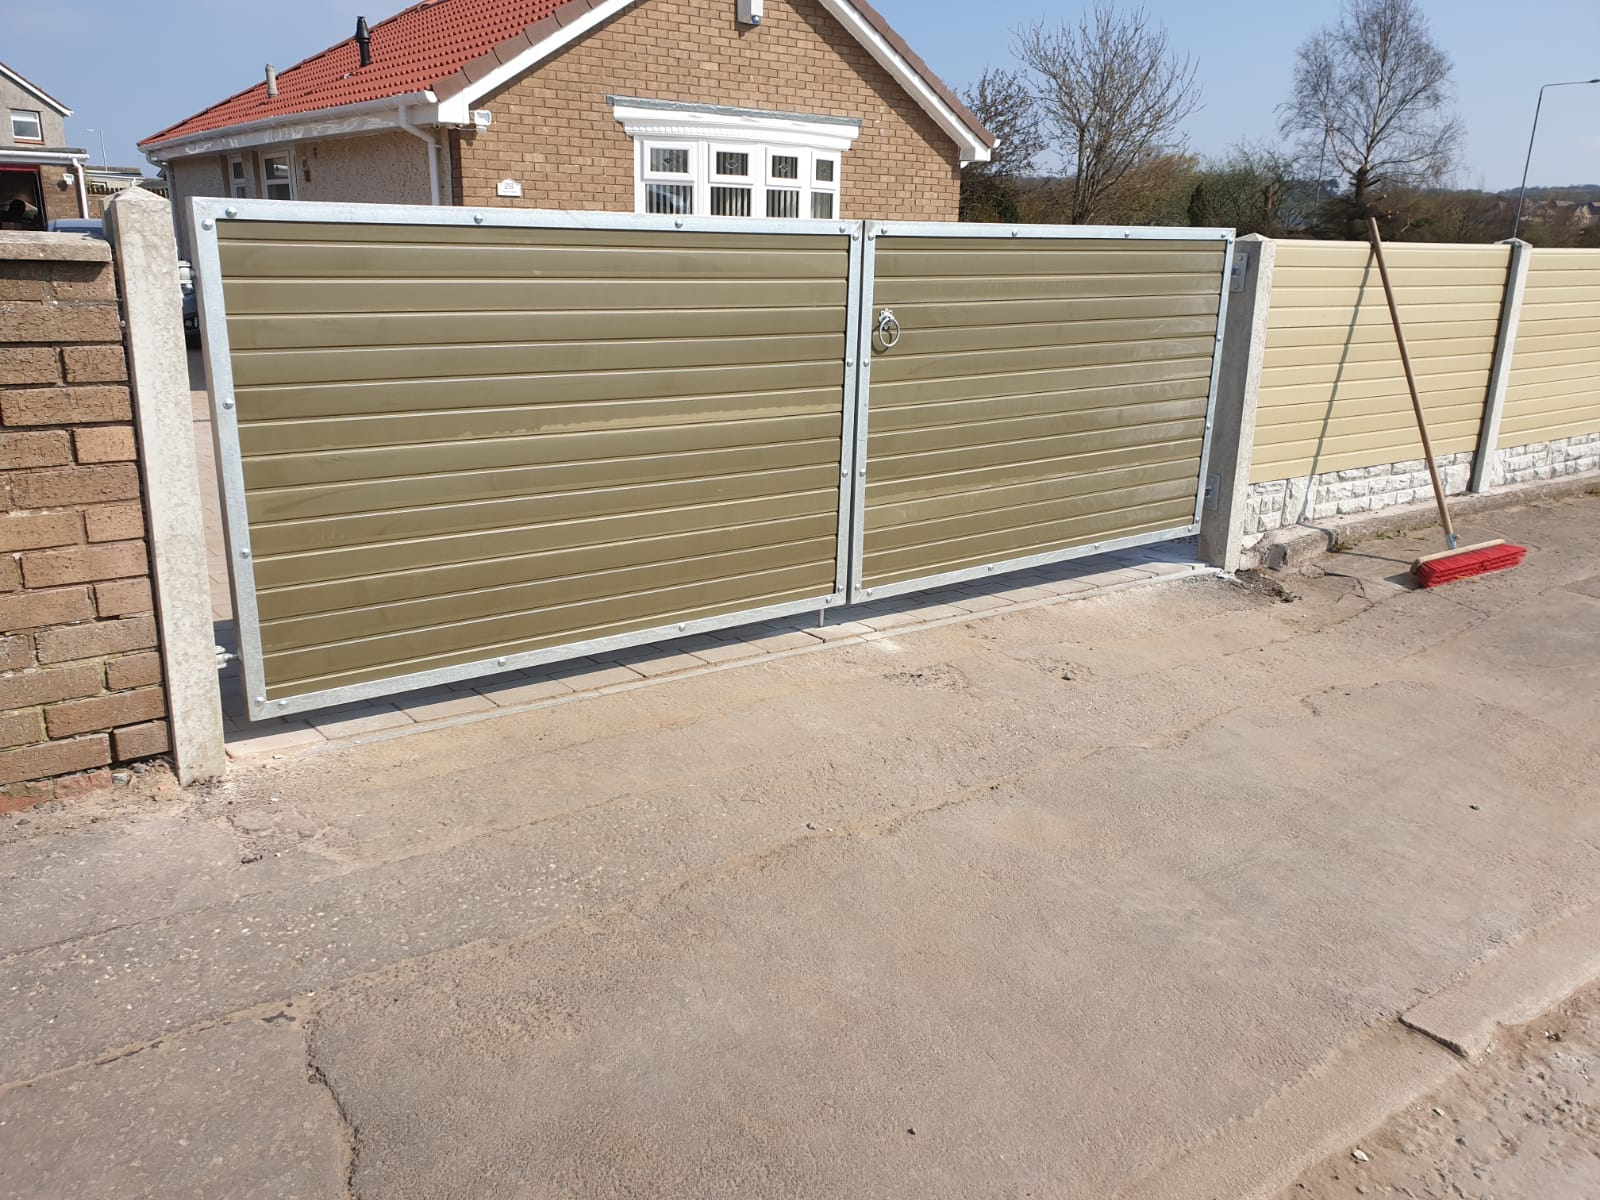 Composite driveway gates by Dain Art Iron in Ayrshire